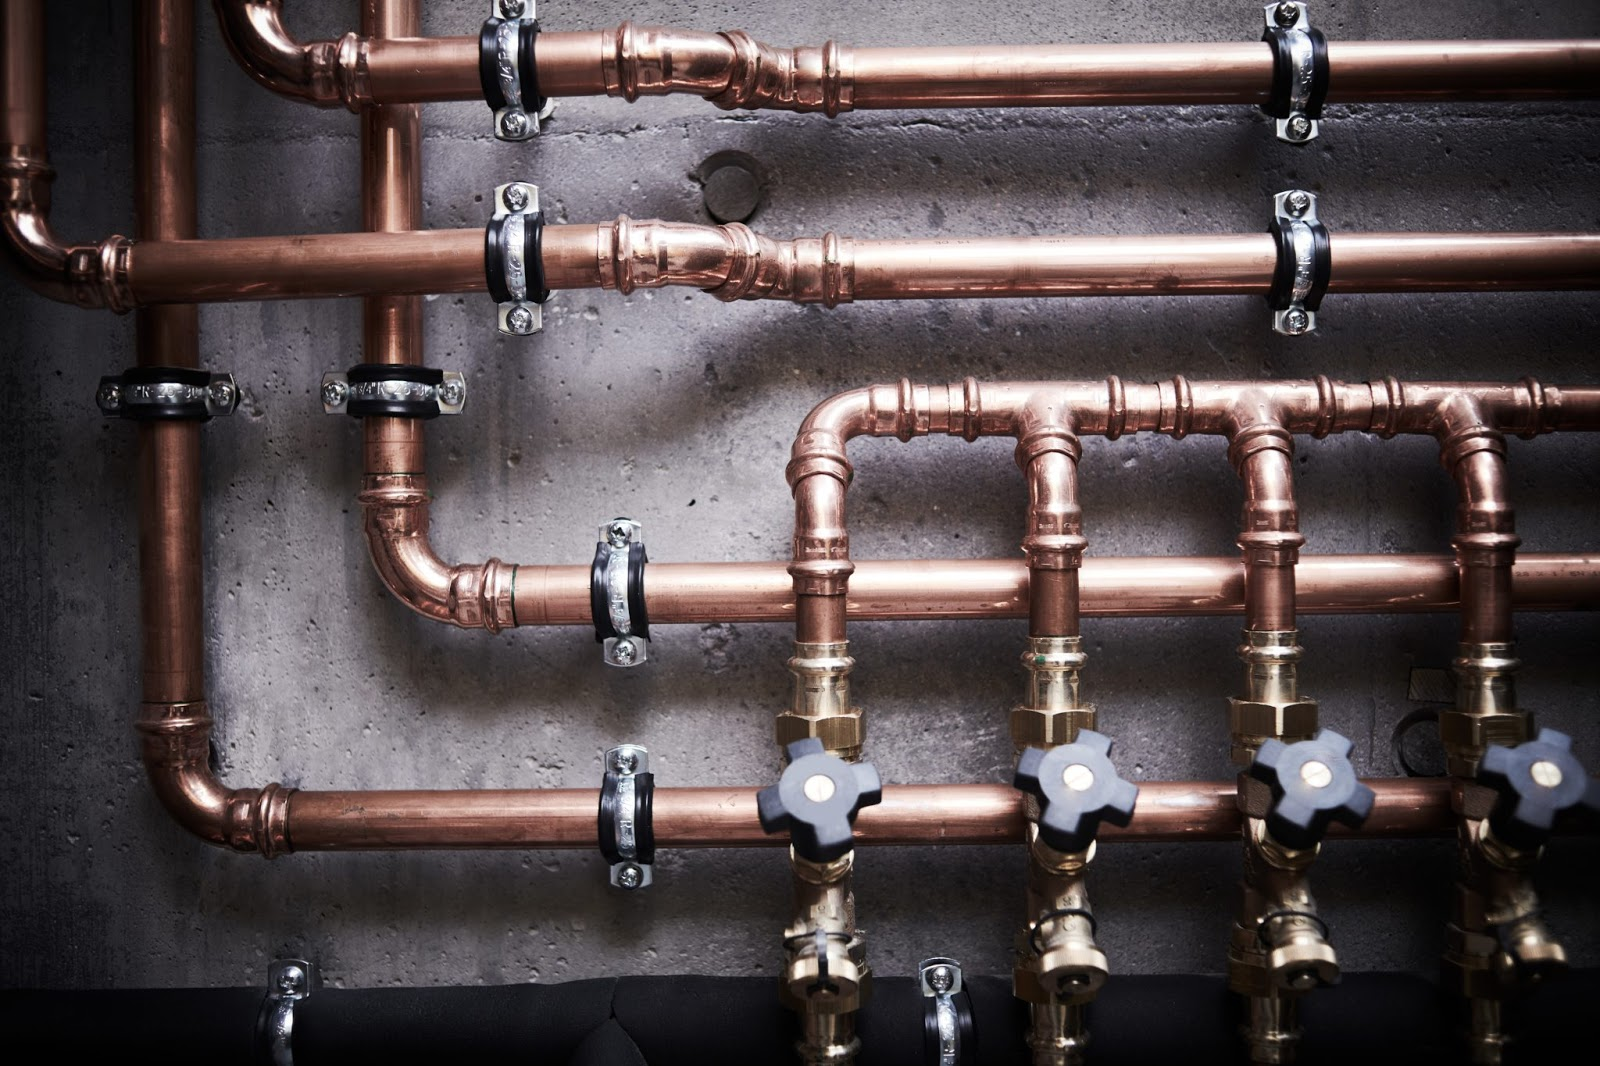 intertwined copper piping with faucets